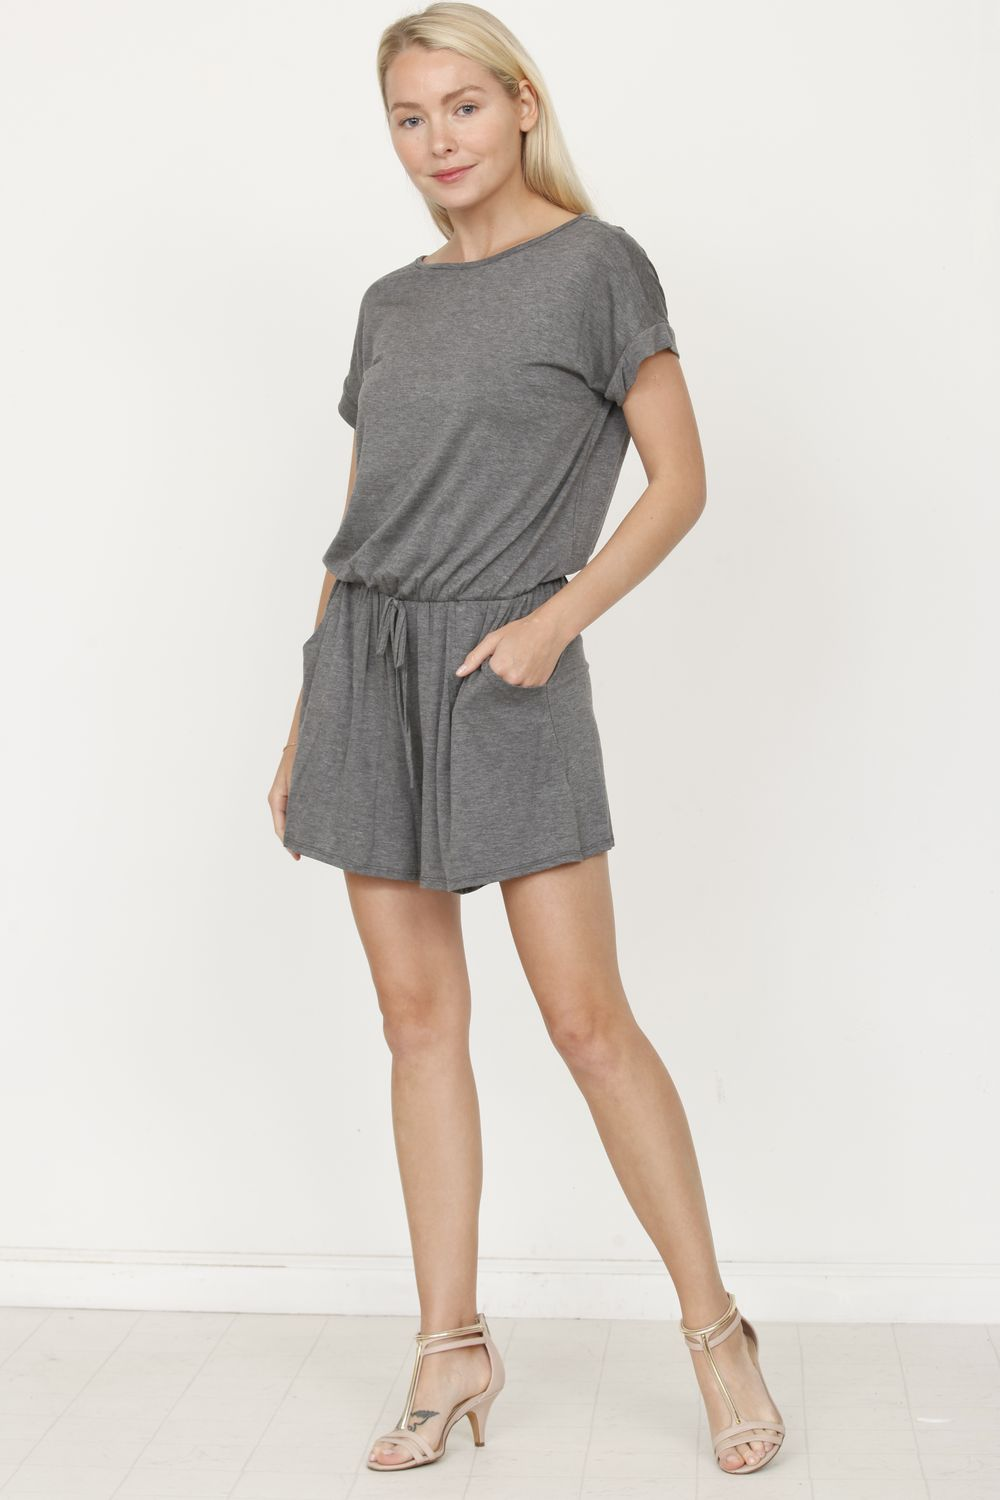 Solid Charcoal Short Sleeve Romper